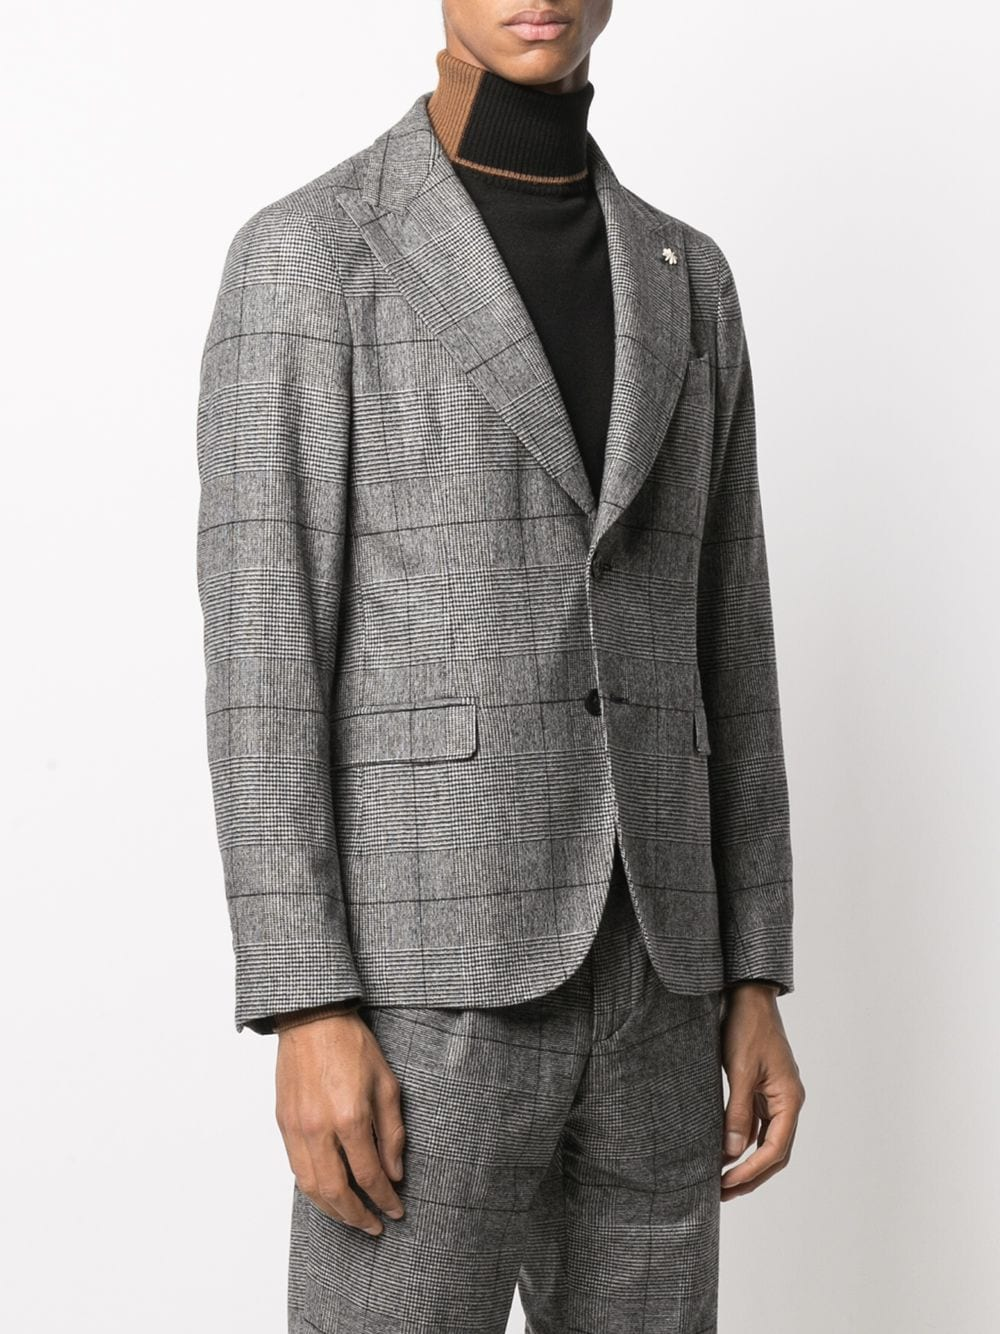 Black and white virgin wool blend blazer featuring Prince of Wales check pattern Manuel Ritz |  | 2932G2748-20356497